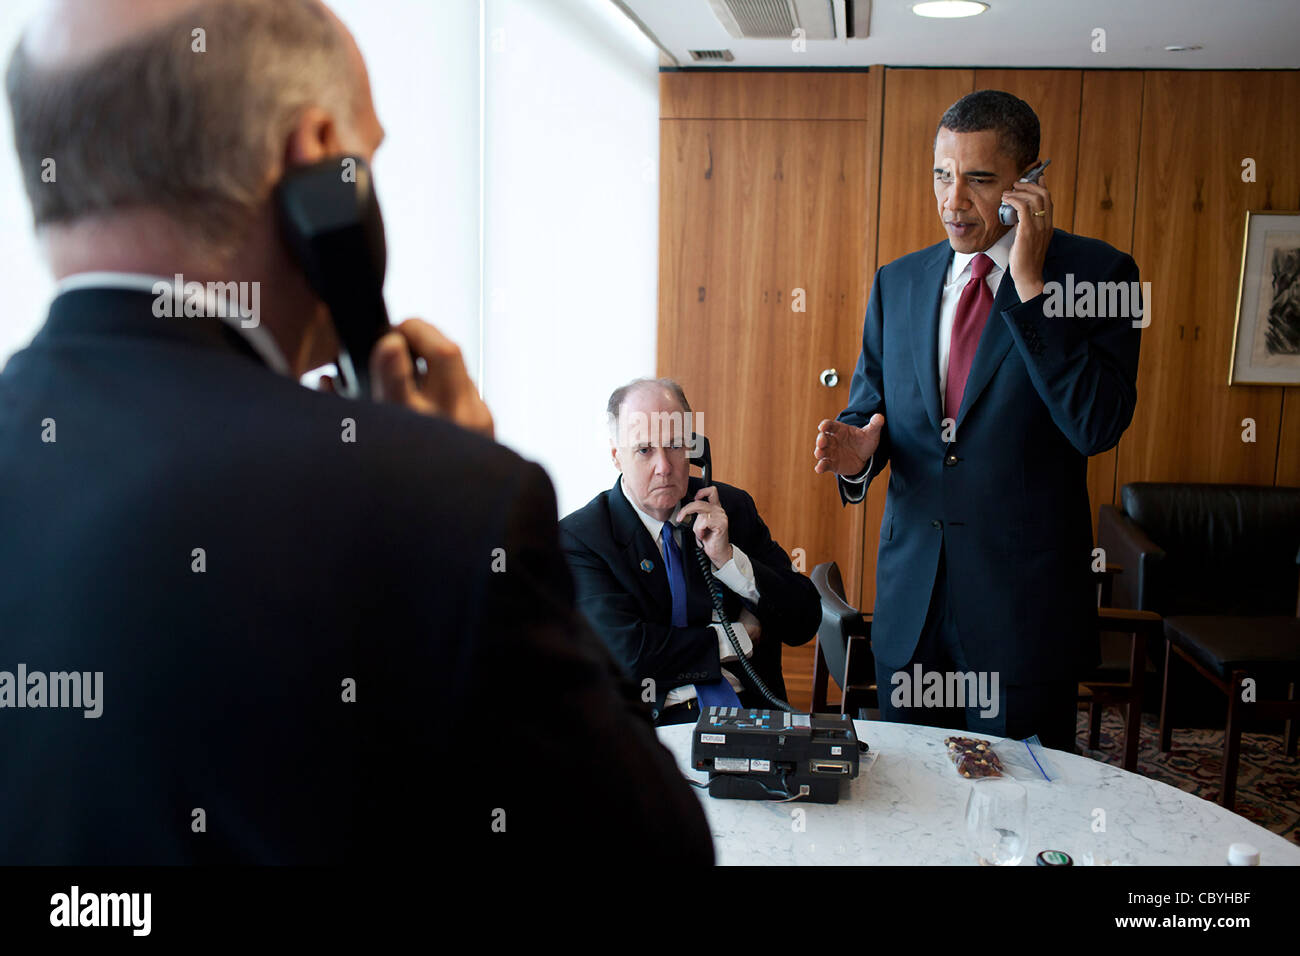 President Barack Obama takes part in a phone call briefing on Libya March 19, 2011 at the Palacio Do Planalto in - Stock Image